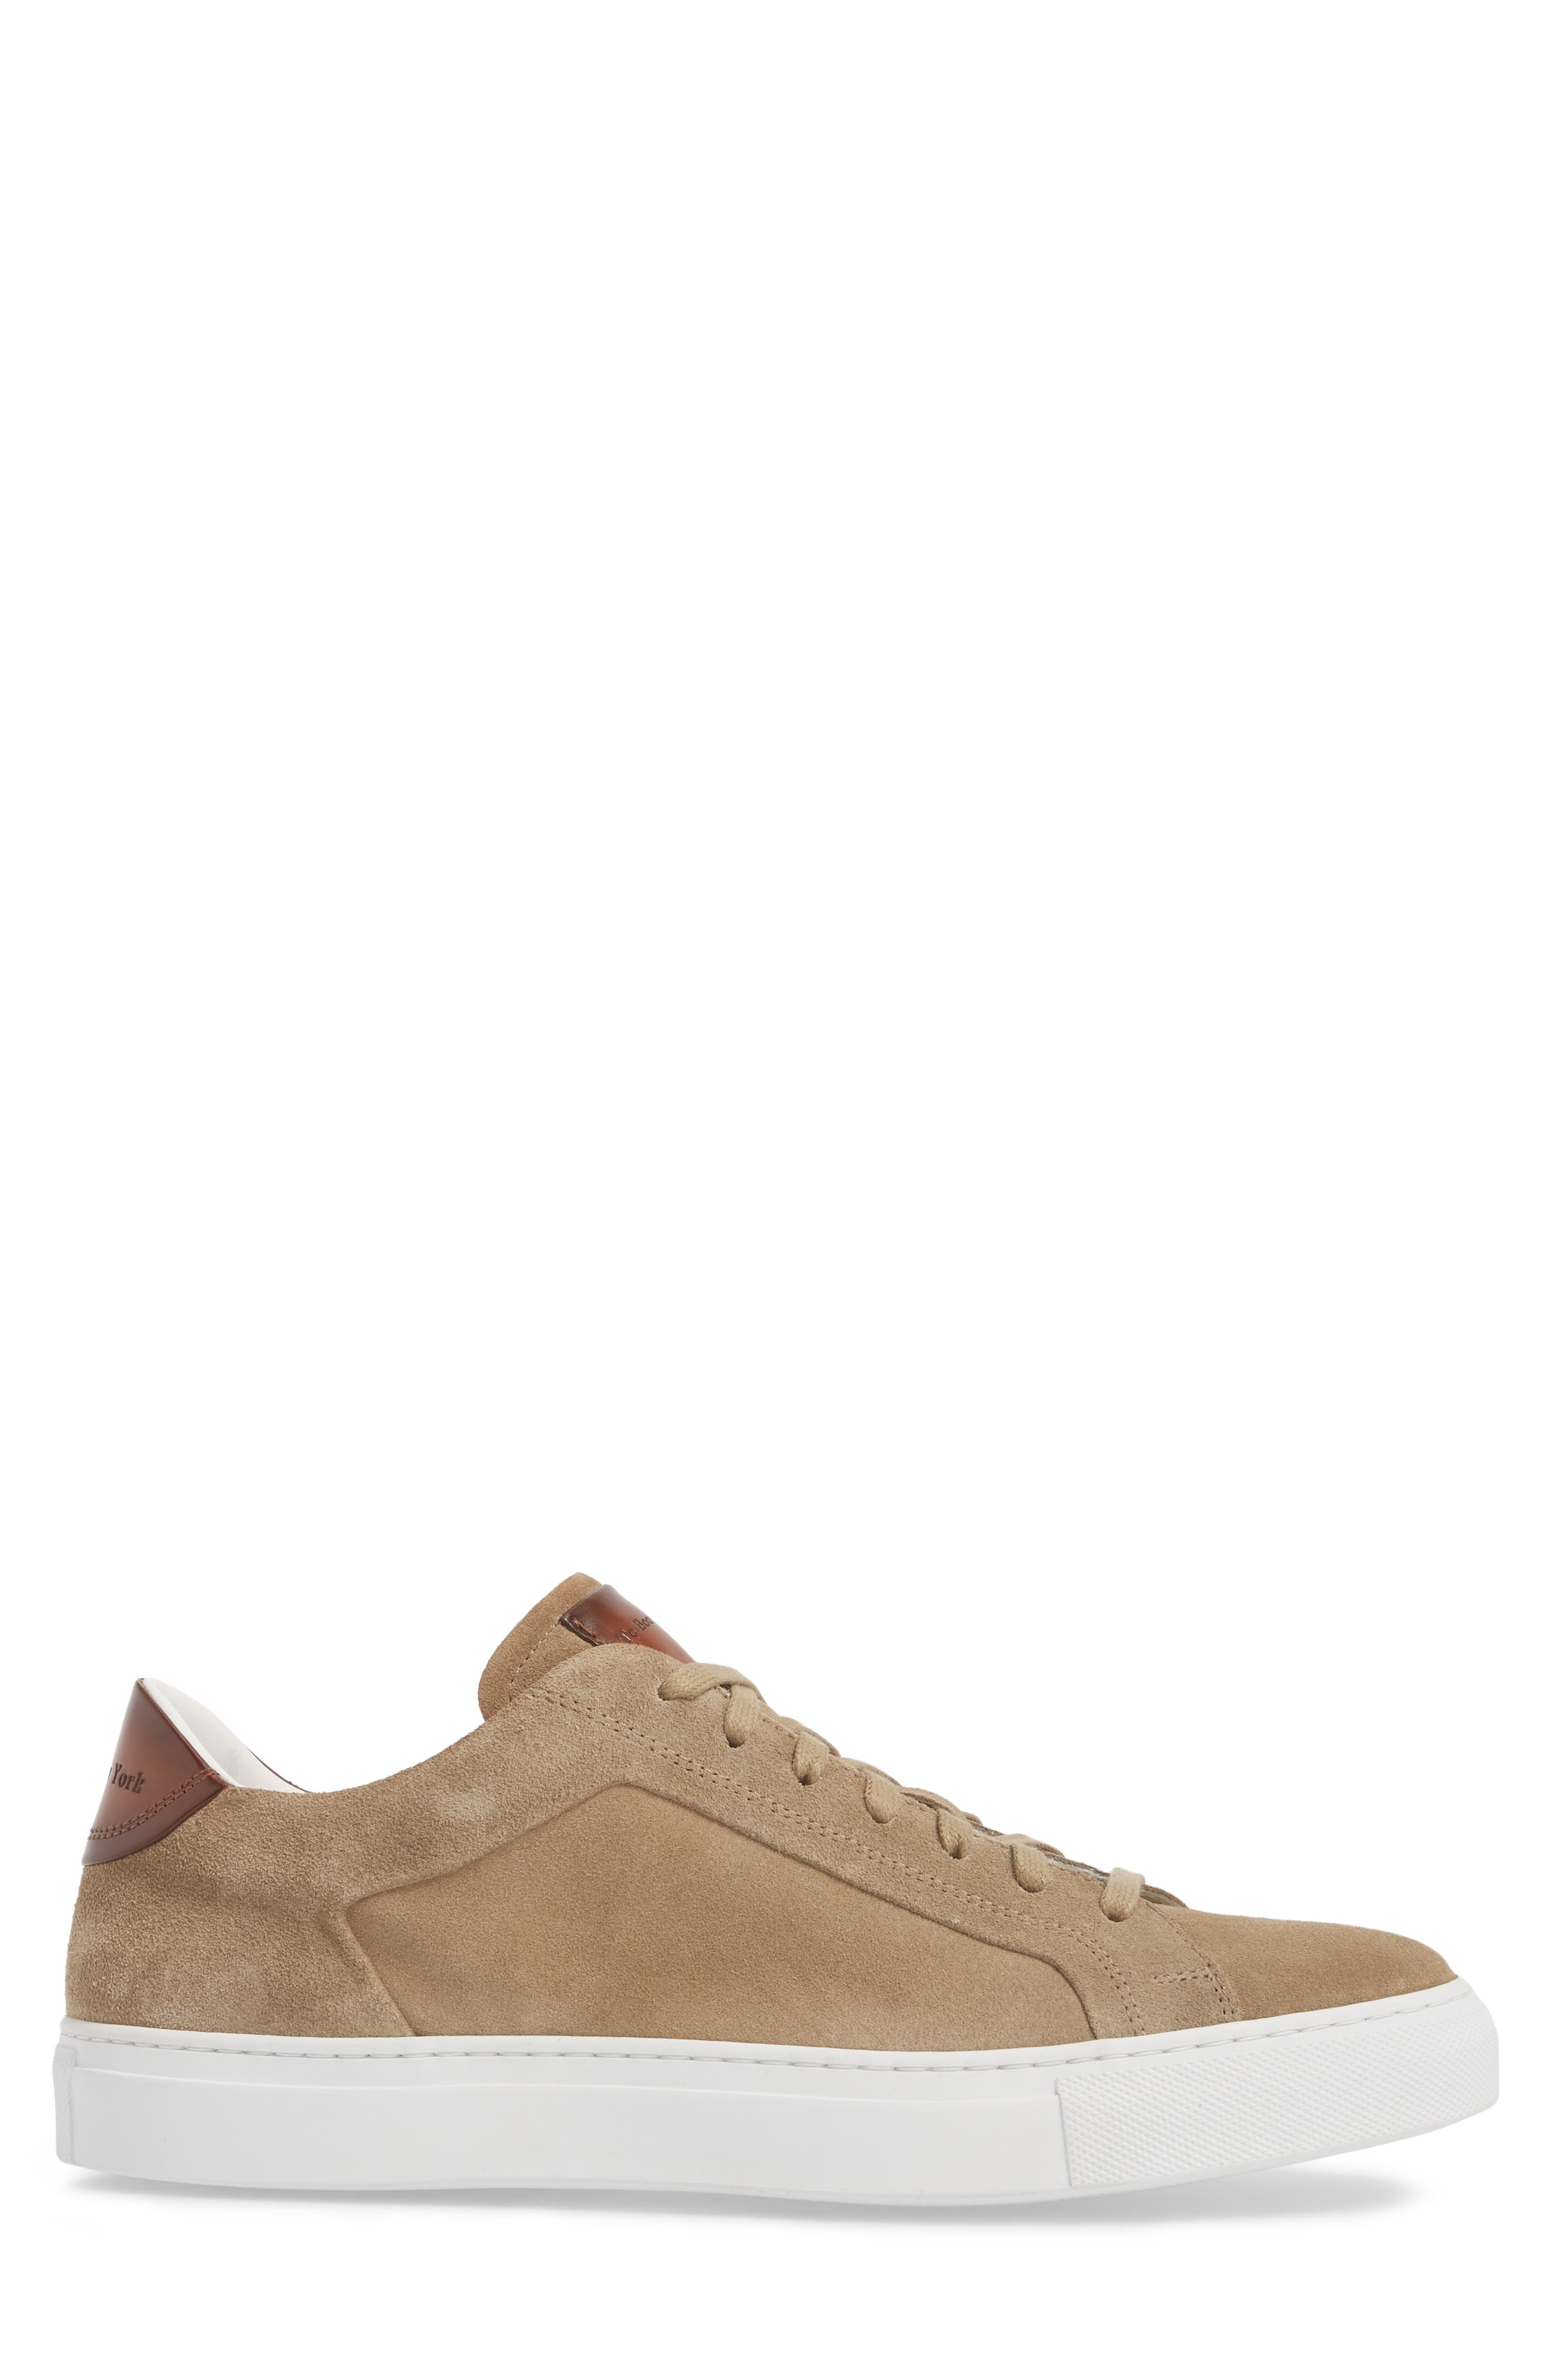 Britt Low Top Sneaker,                             Alternate thumbnail 3, color,                             Tan Suede